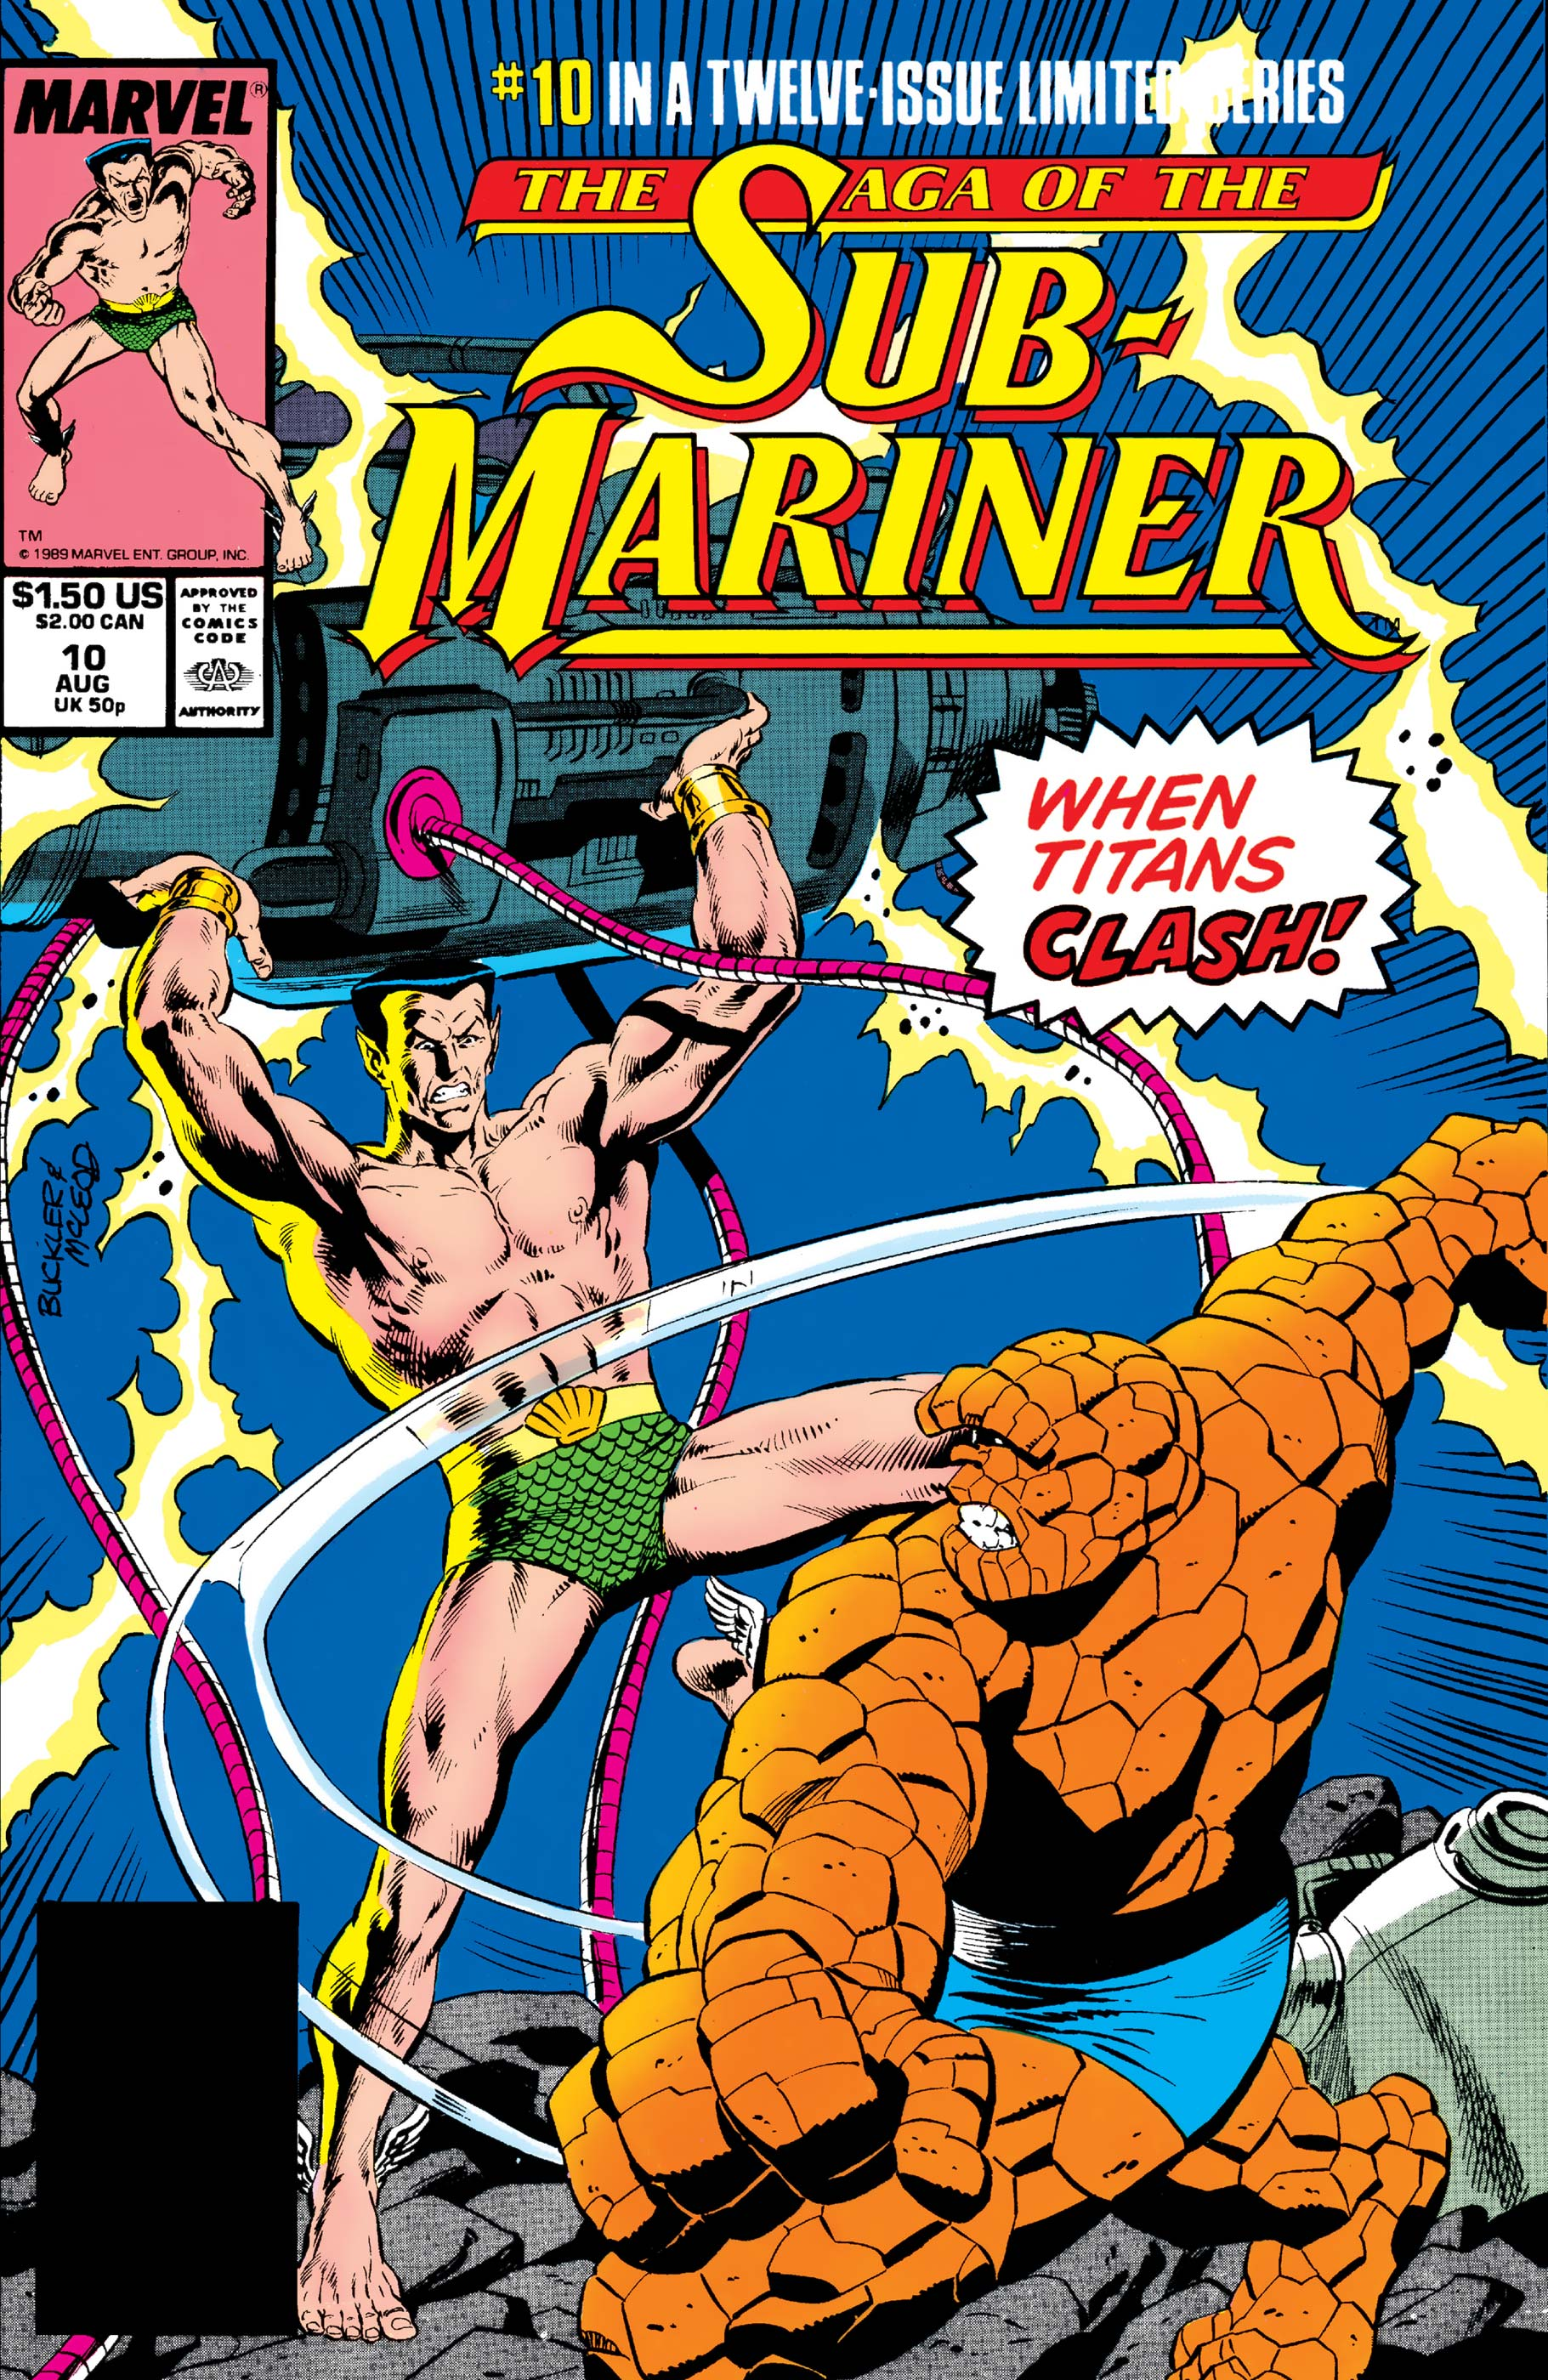 Saga of the Sub-Mariner (1988) #10